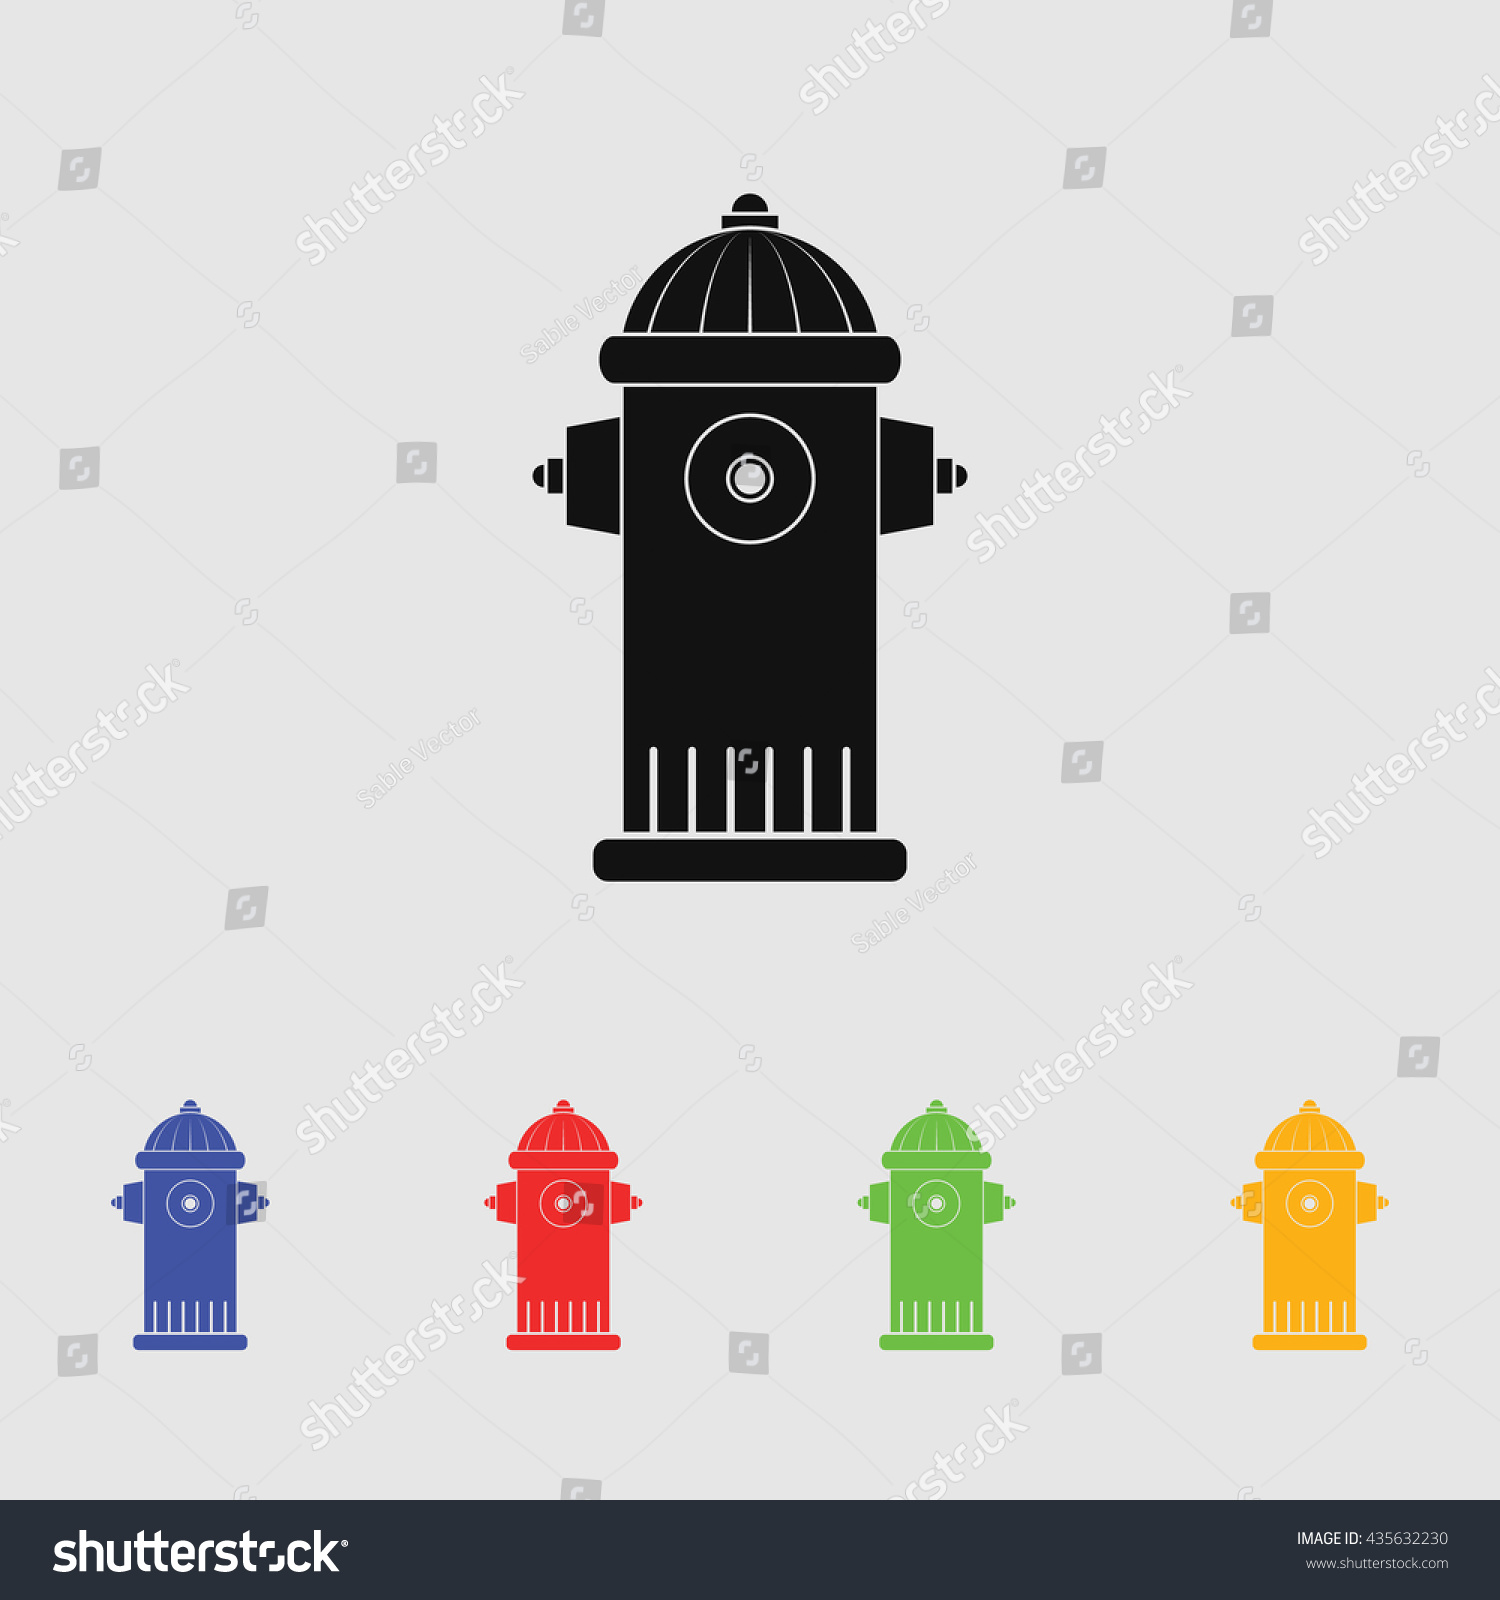 Fire Hydrant Symbol Stock Vector Royalty Free 435632230 Shutterstock